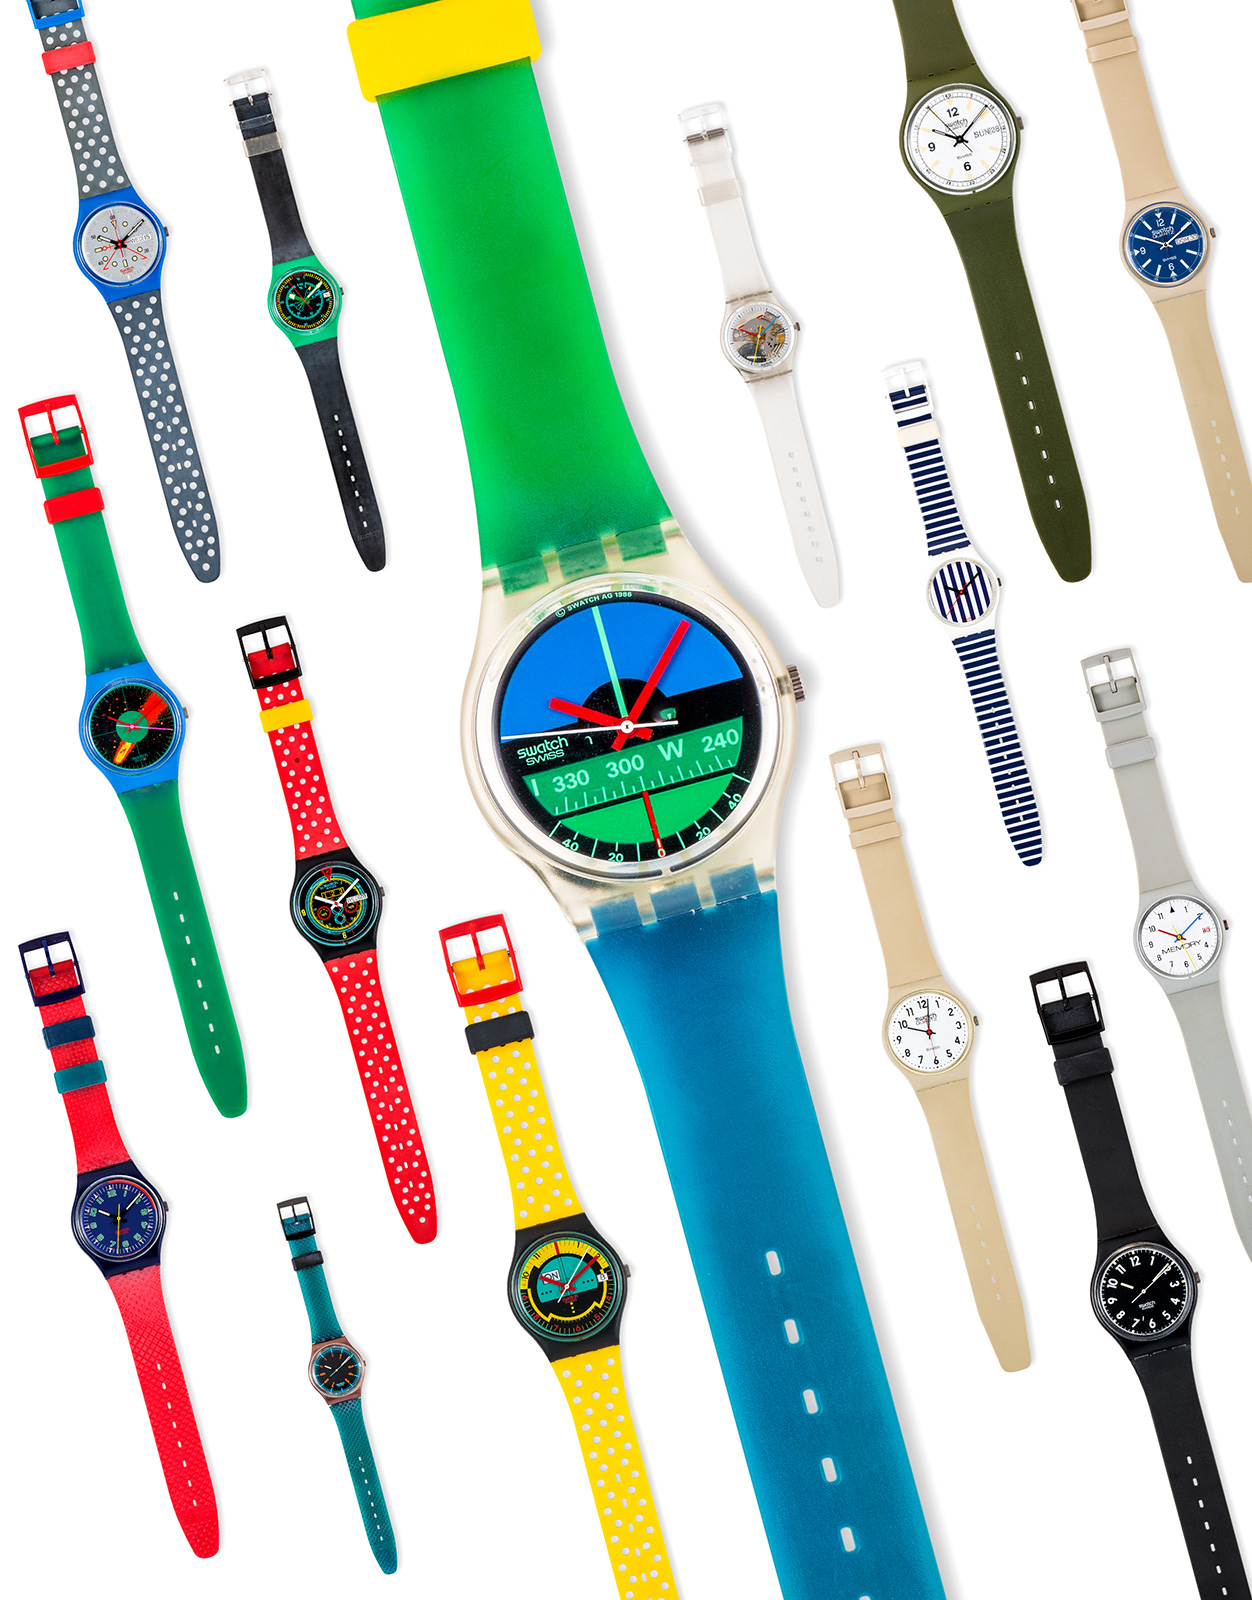 VO_-Swatch-Art_Prototypes2